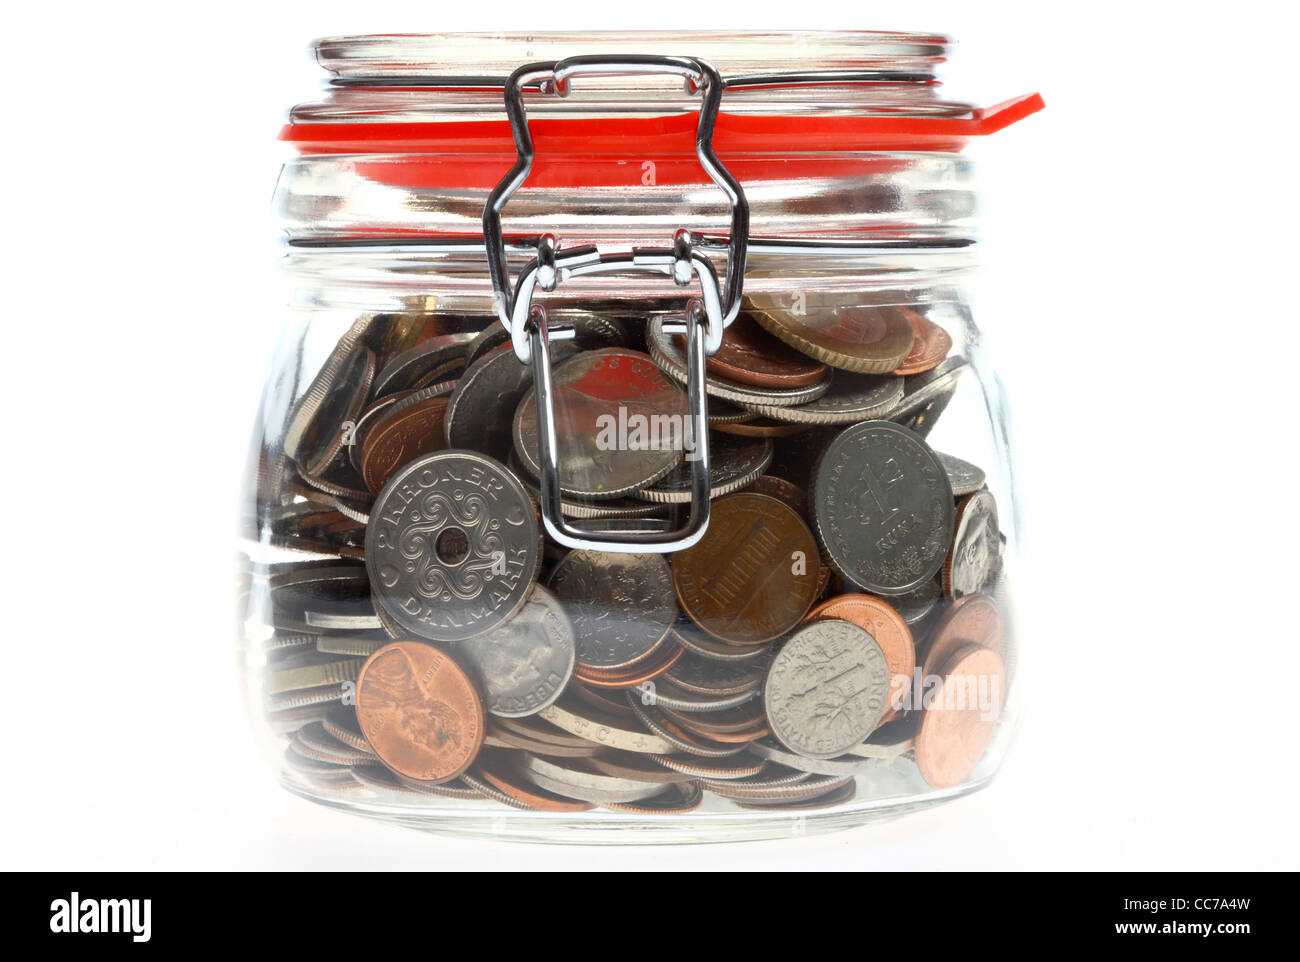 Money in a glass, preserving jar,  coins, different kinds of coins, from different country's, different currency's. - Stock Image